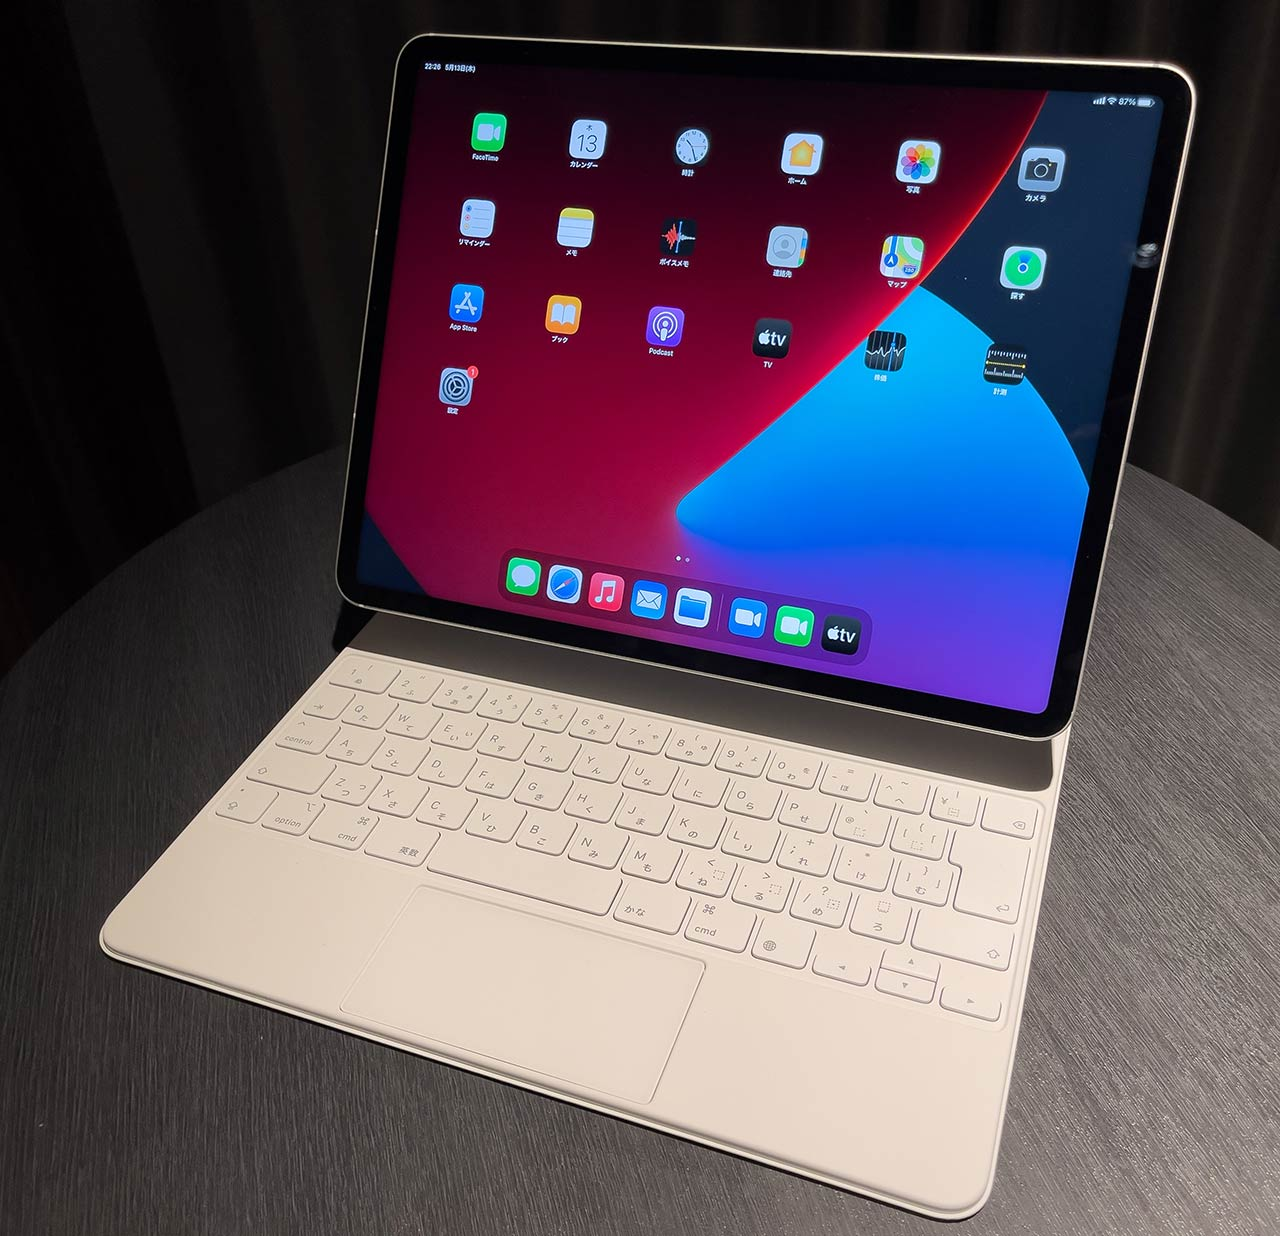 What has changed in the new iPad Pro 12.9 inch?